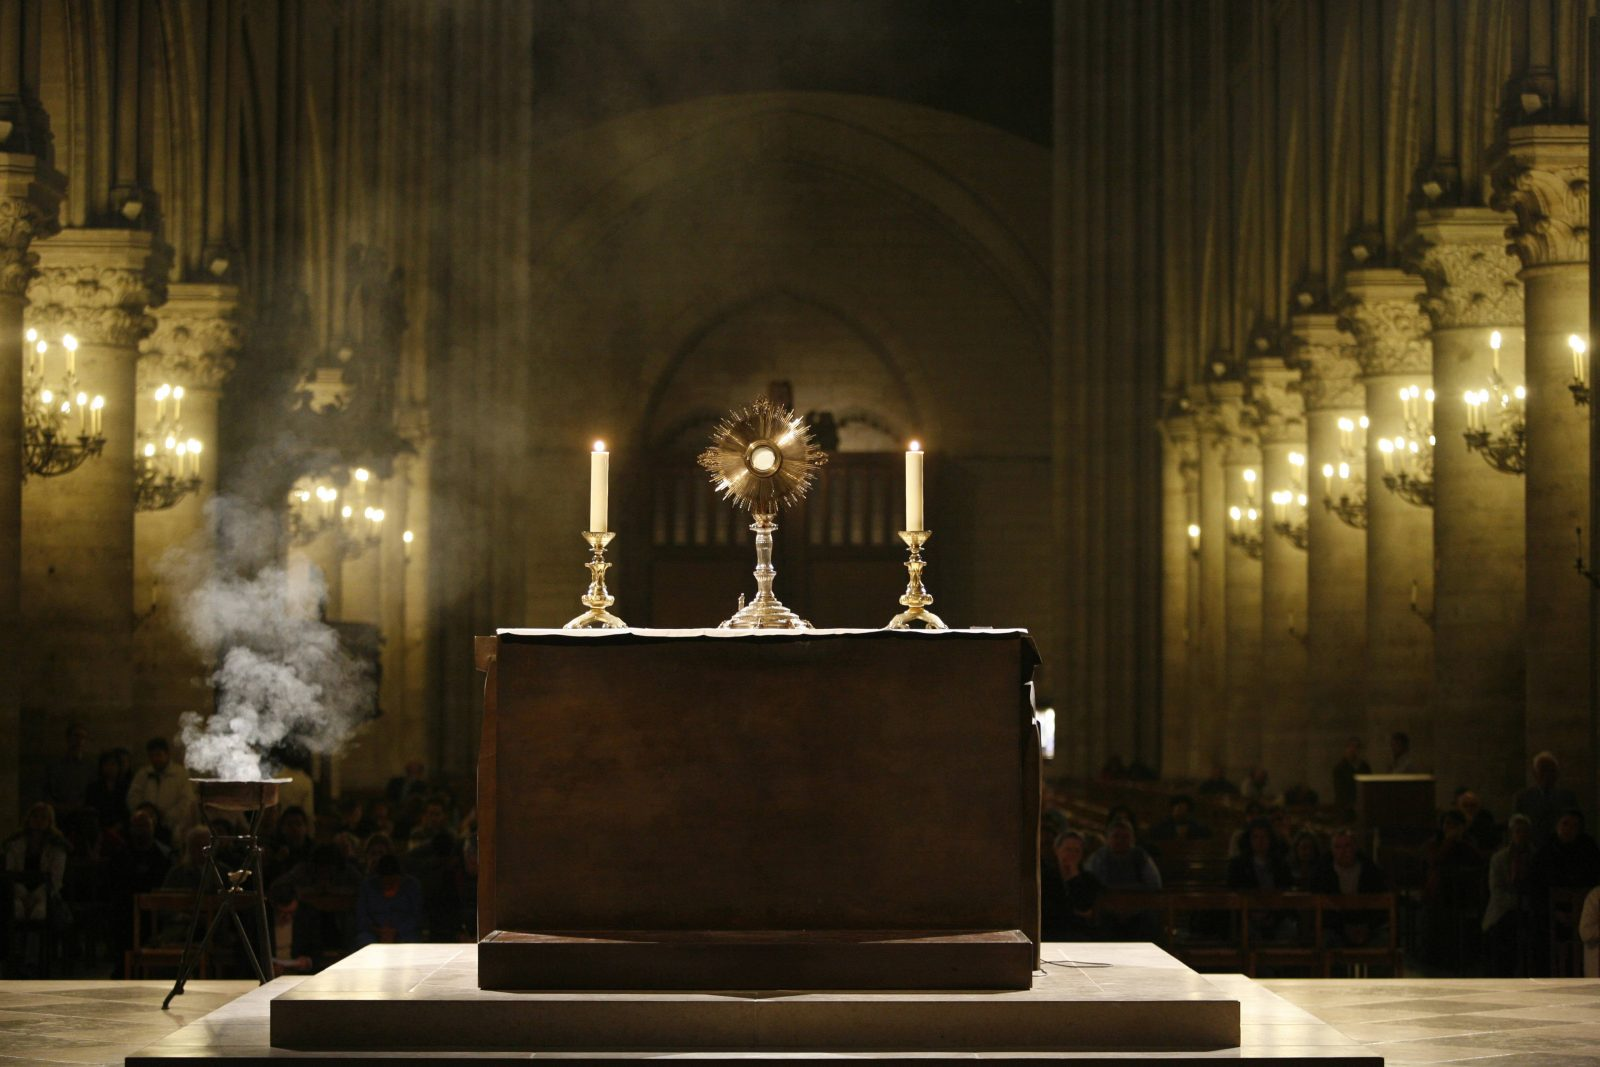 Holy sacrament in Paris cathedral, Paris, France, Europe